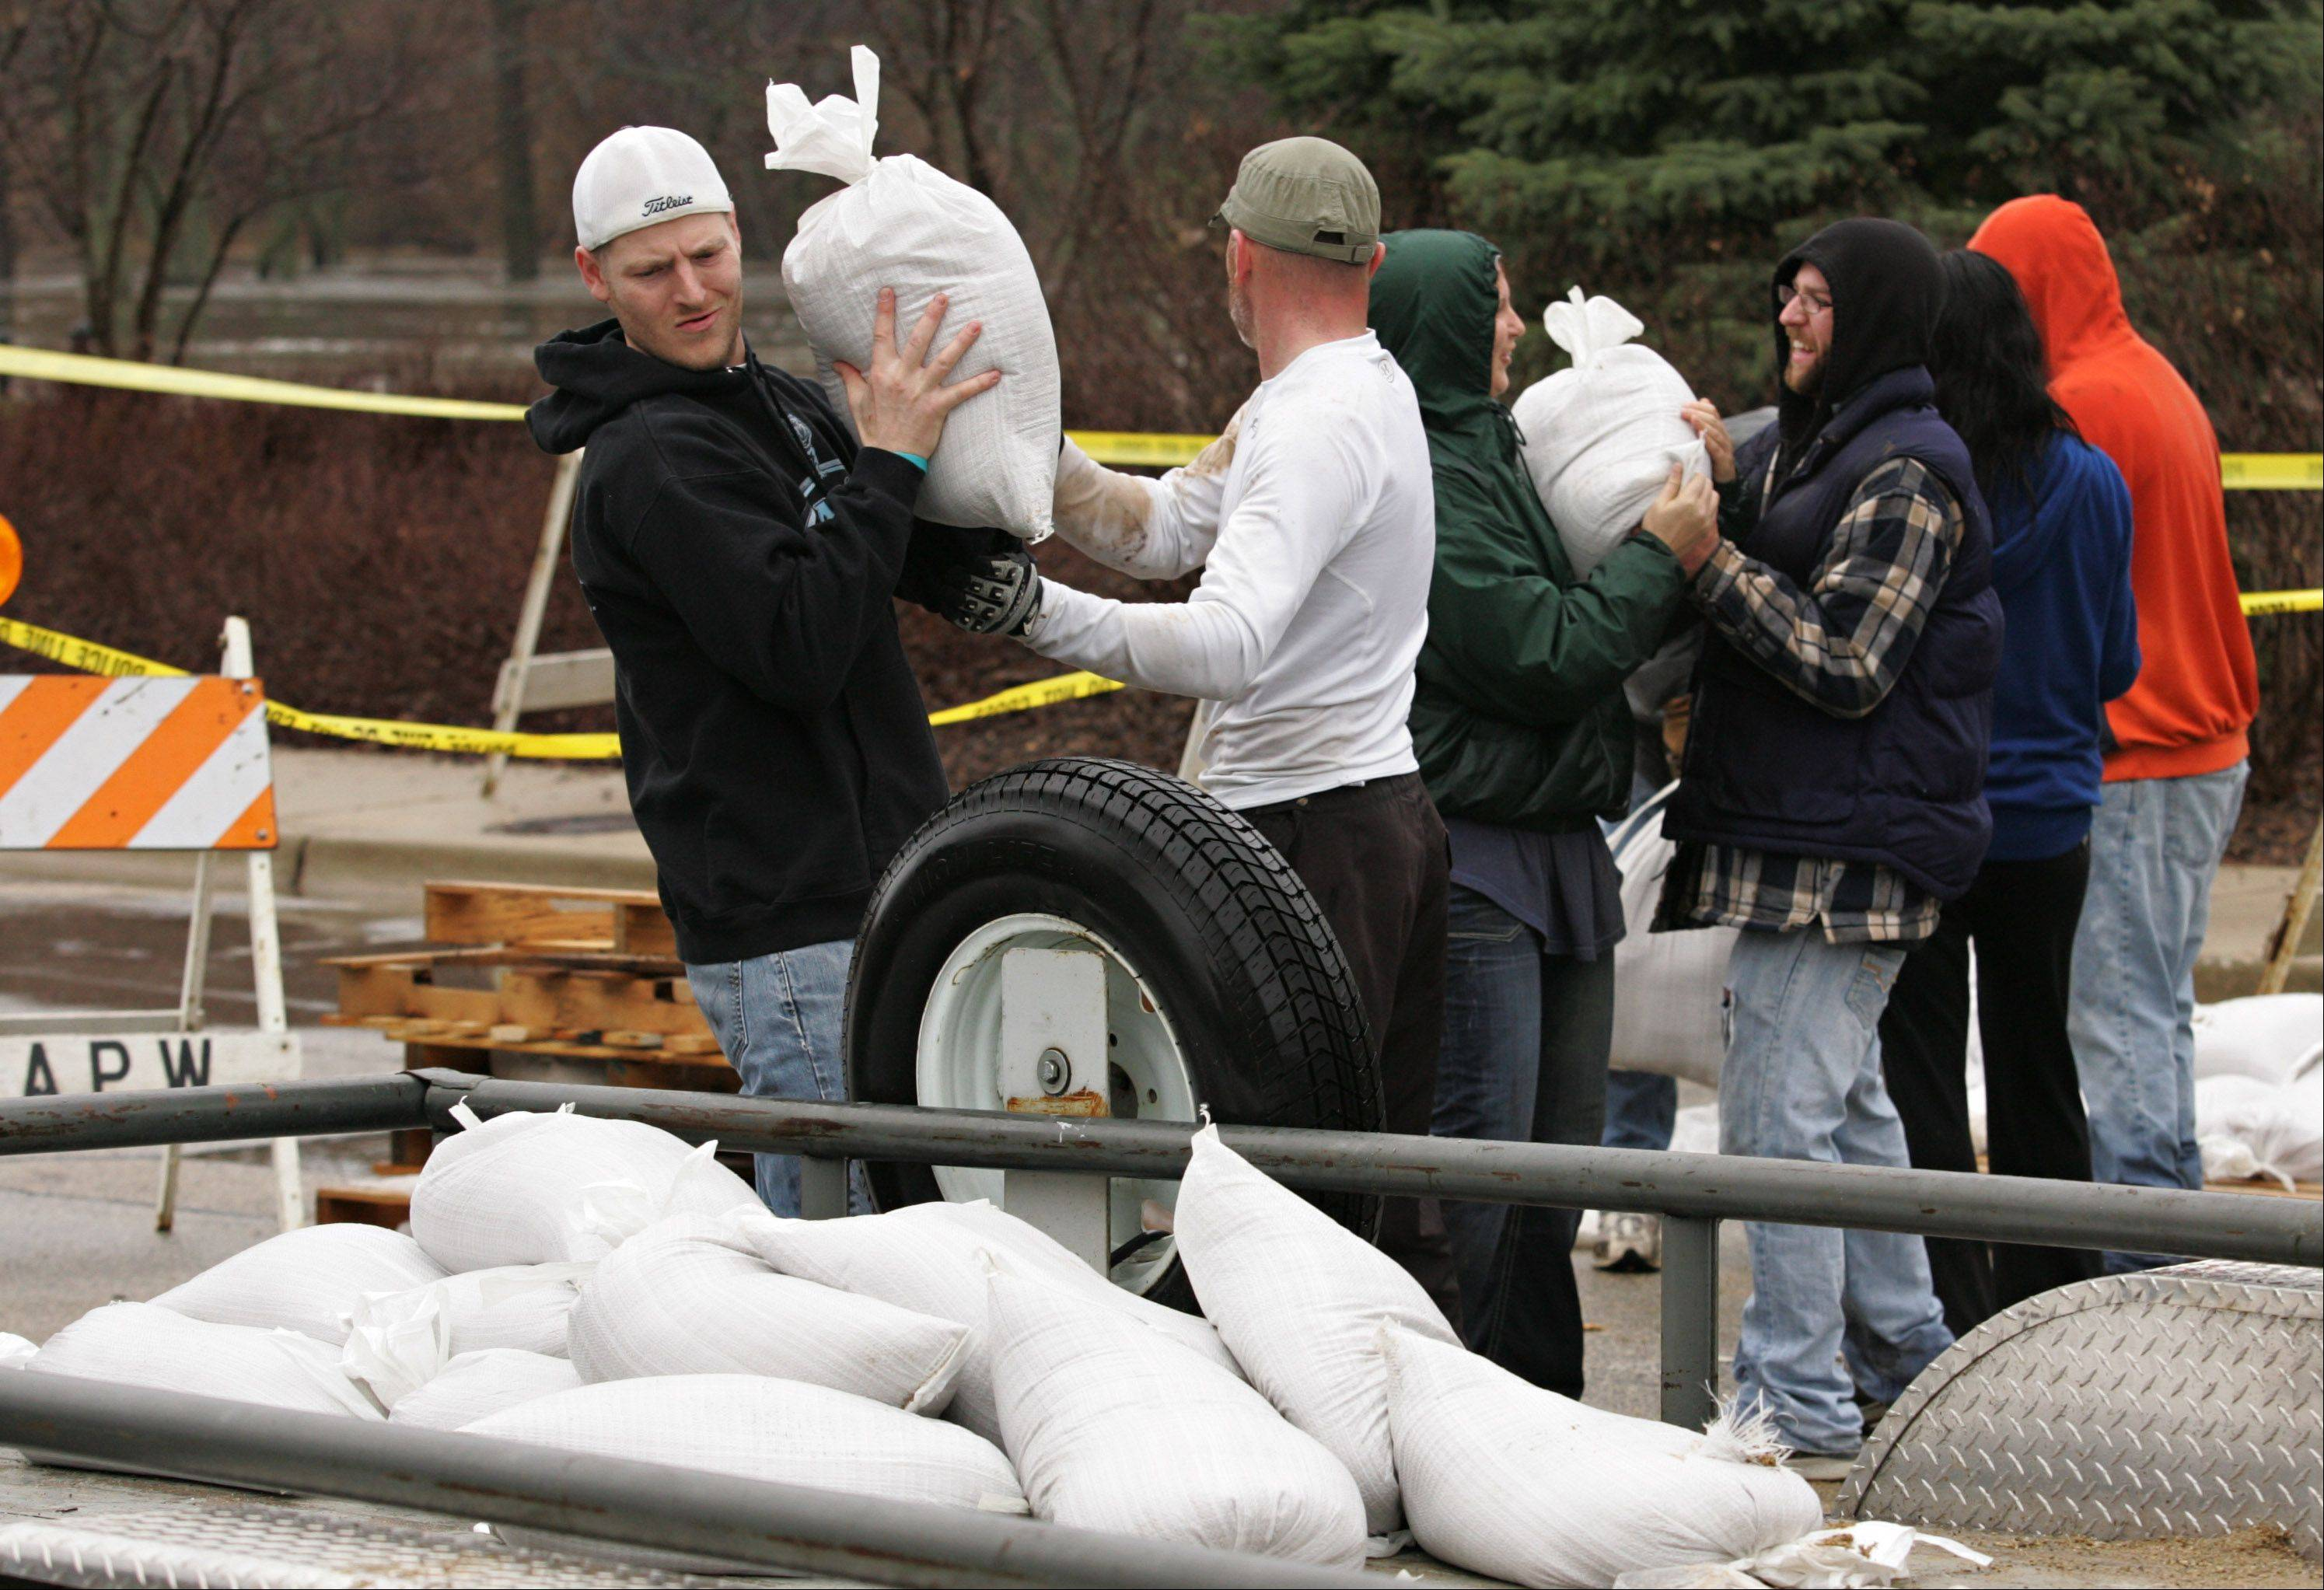 Algonquin resident Kevin Prokop loads more sand bags into a trailer to be used in nearby backyards to protect against the rising waters of the Fox River.